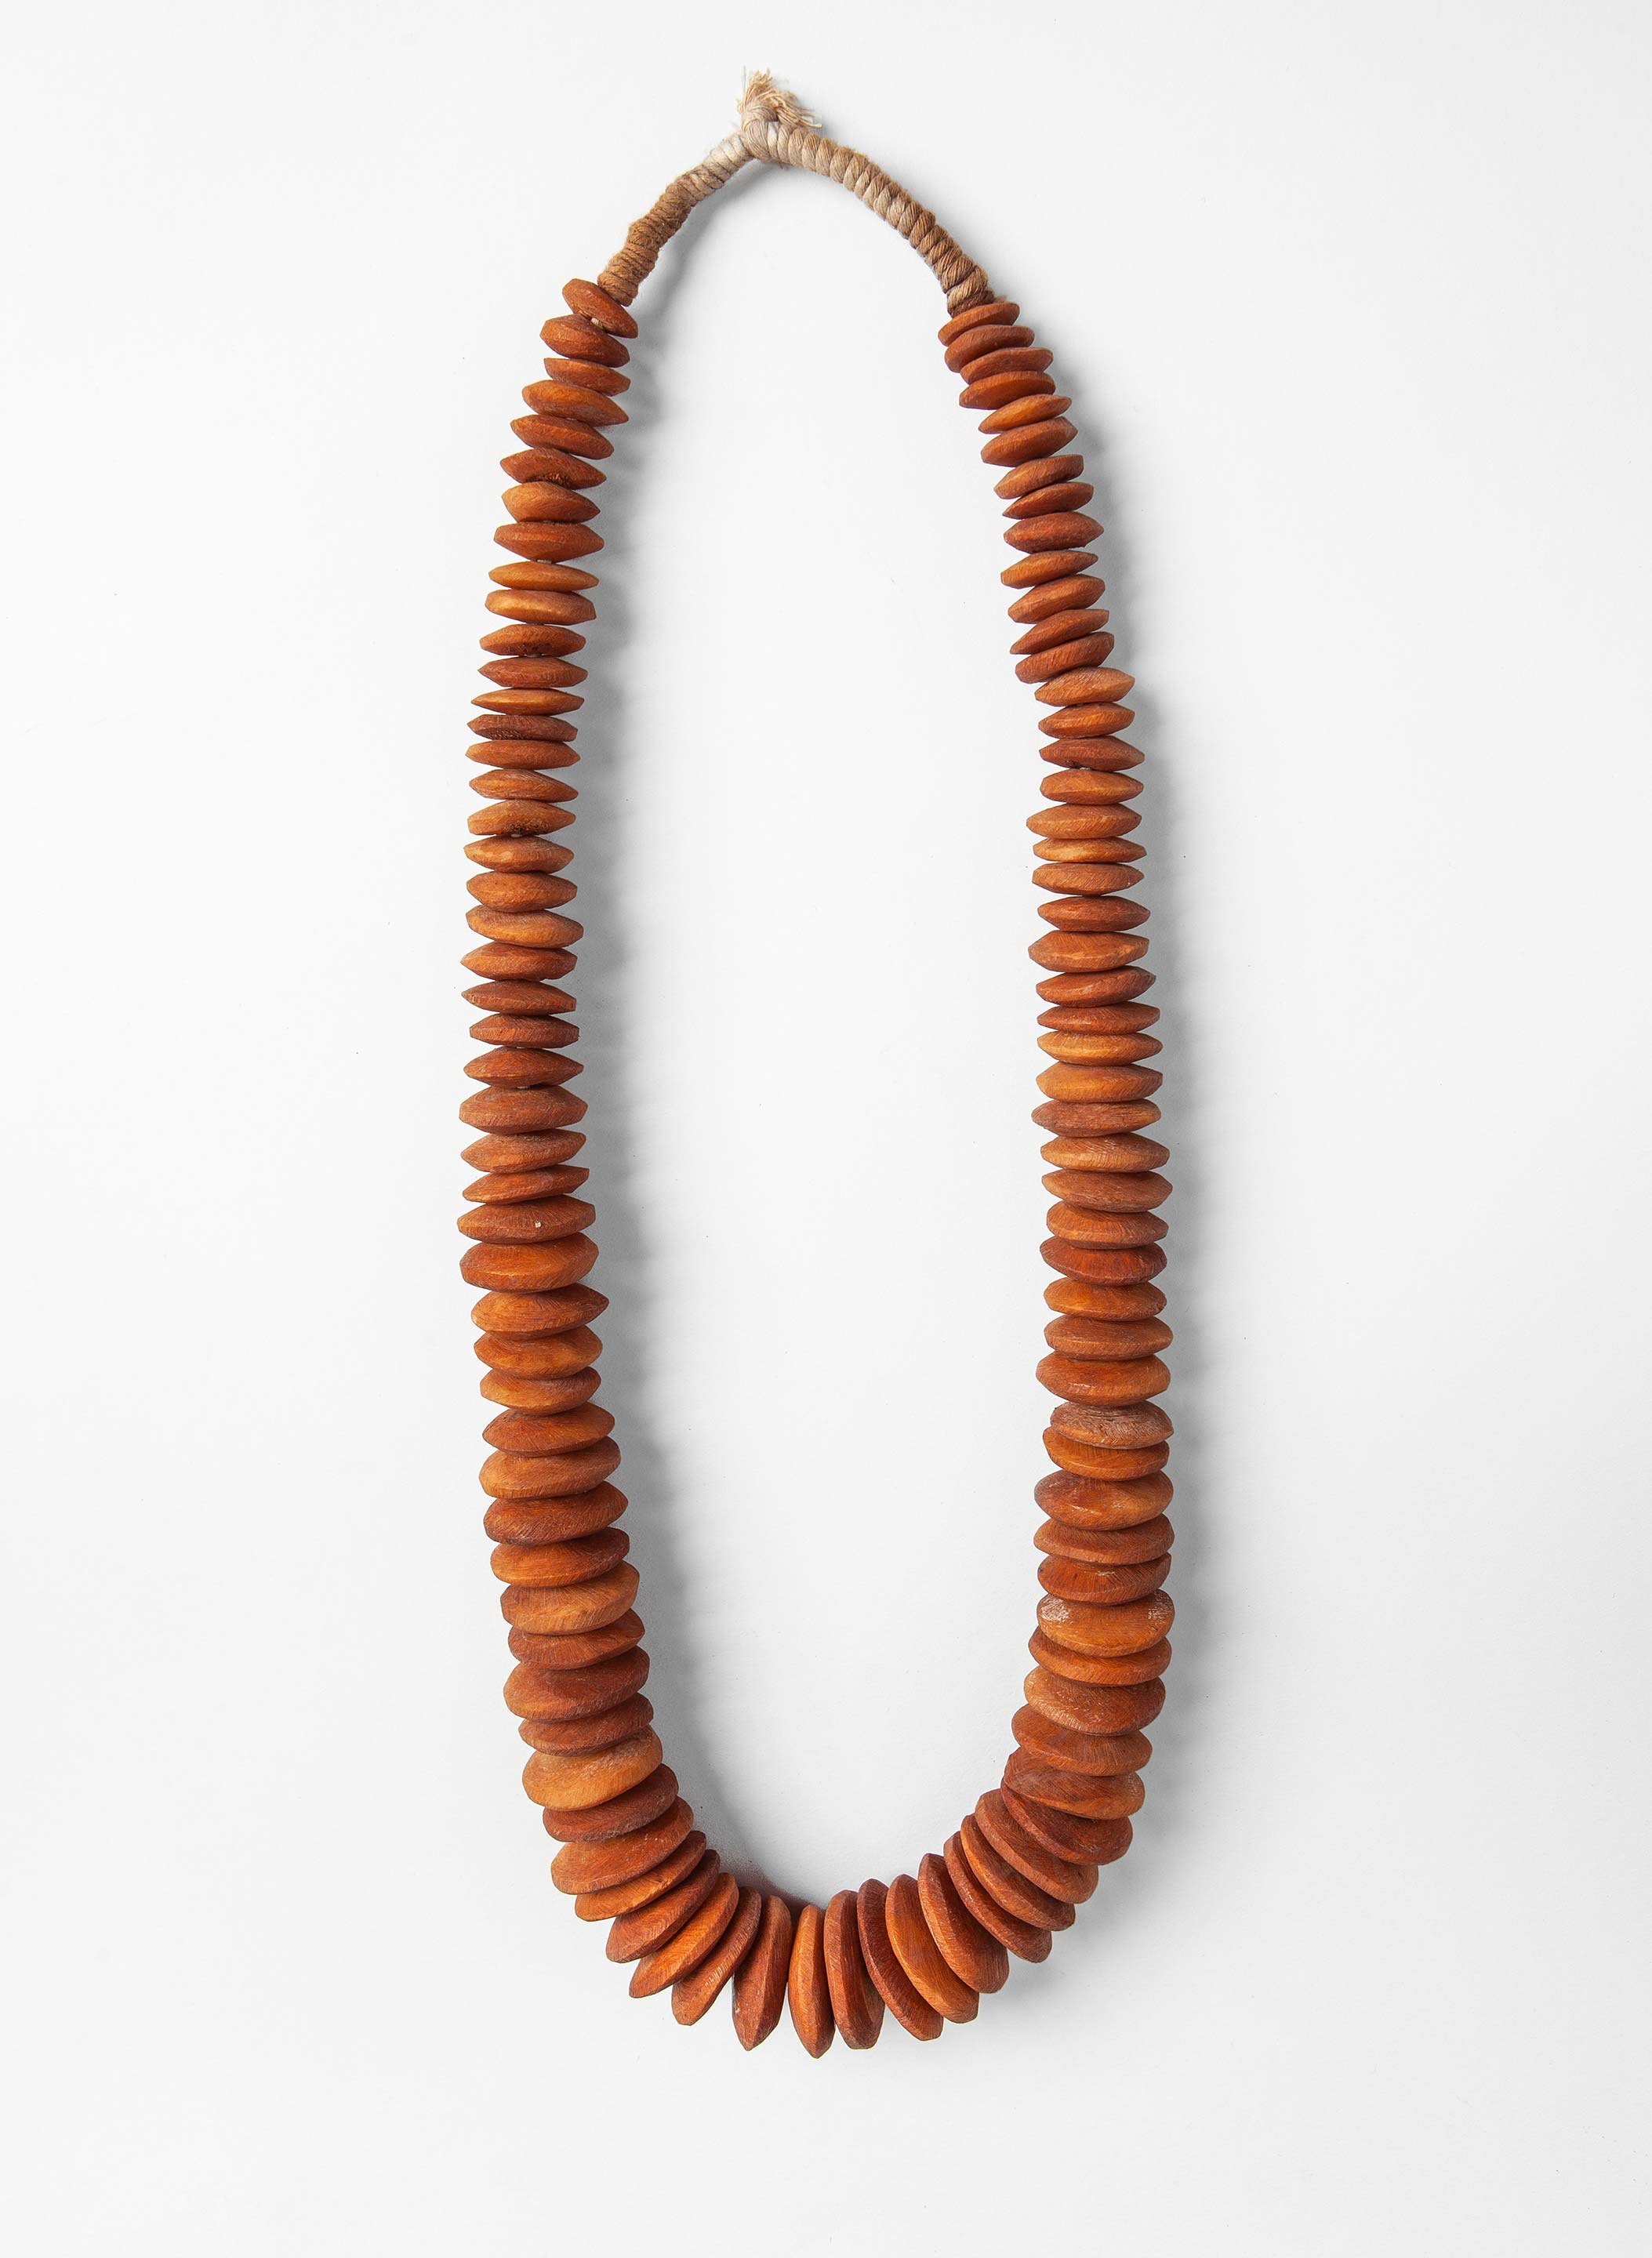 imogene + willie - west african bone beads